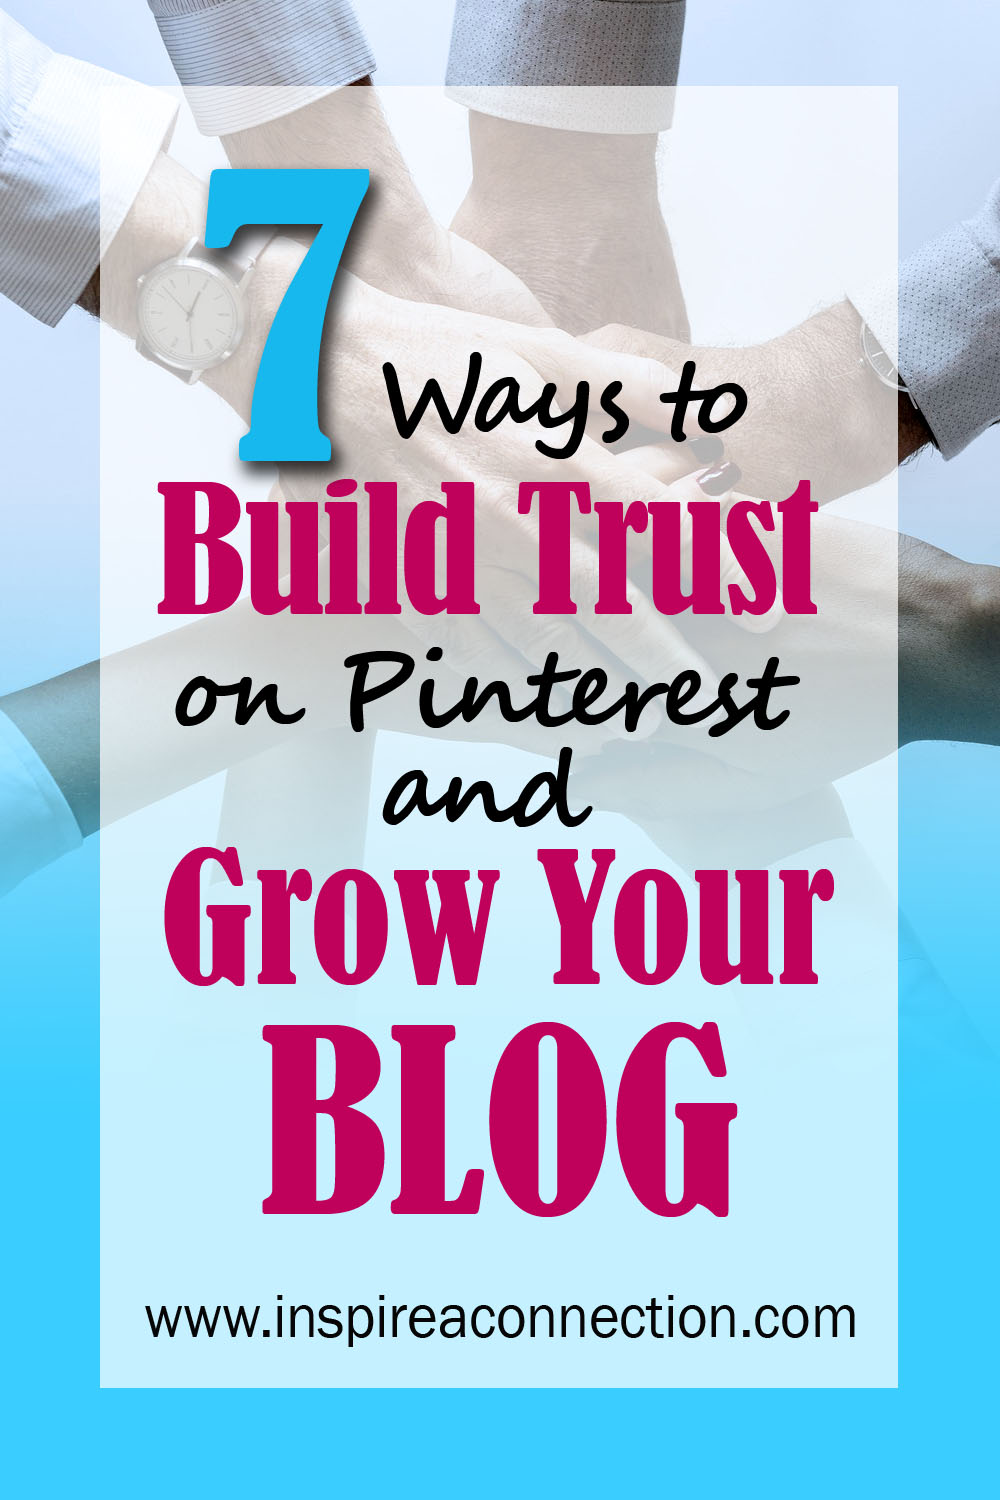 Just like your social media accounts, you'll need to take the time to build the trust of your followers and others on Pinterest. If you do this, your Pinterest experience will be very positive and can be profitable for your blog or business. #pintereststrategies #growyourblog #pinteresttips #tailwind #kwfinder #howtousekeywordsonpinterest #pinterestprintable